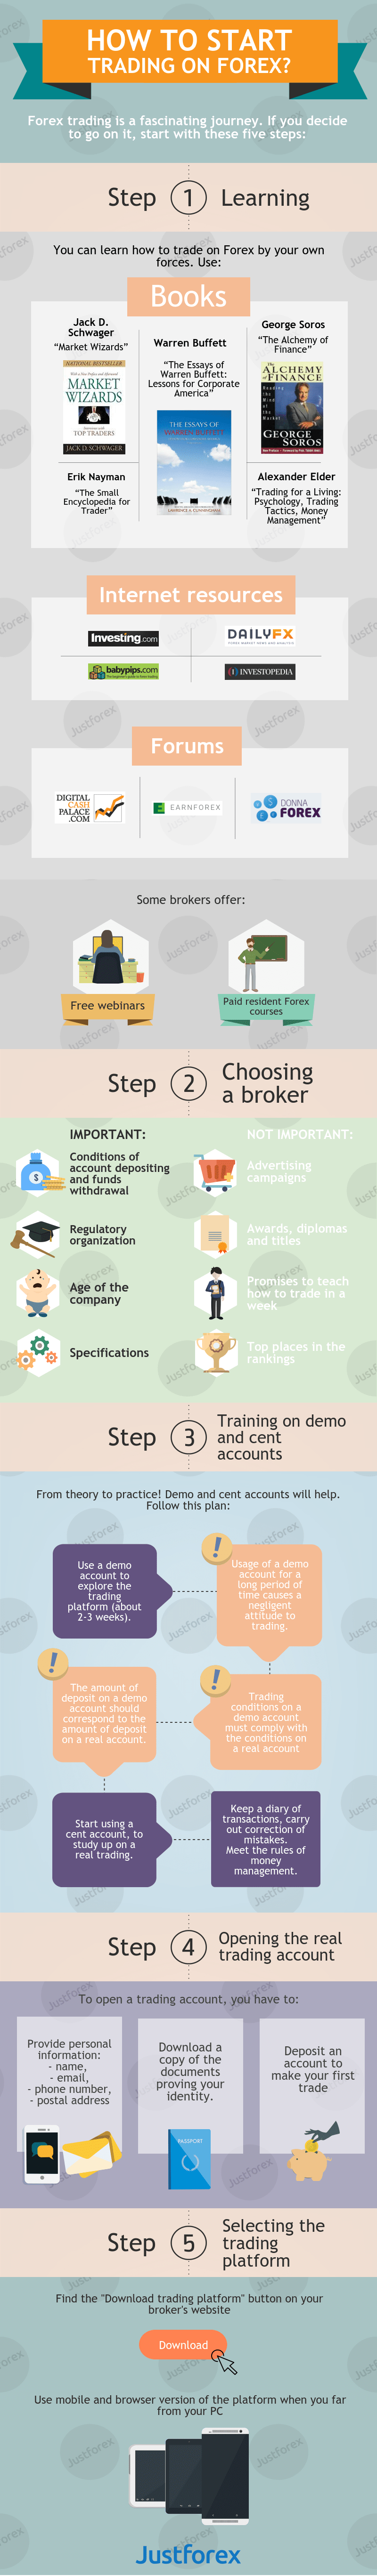 how-to-start-trading-on-forex-infographic-plaza